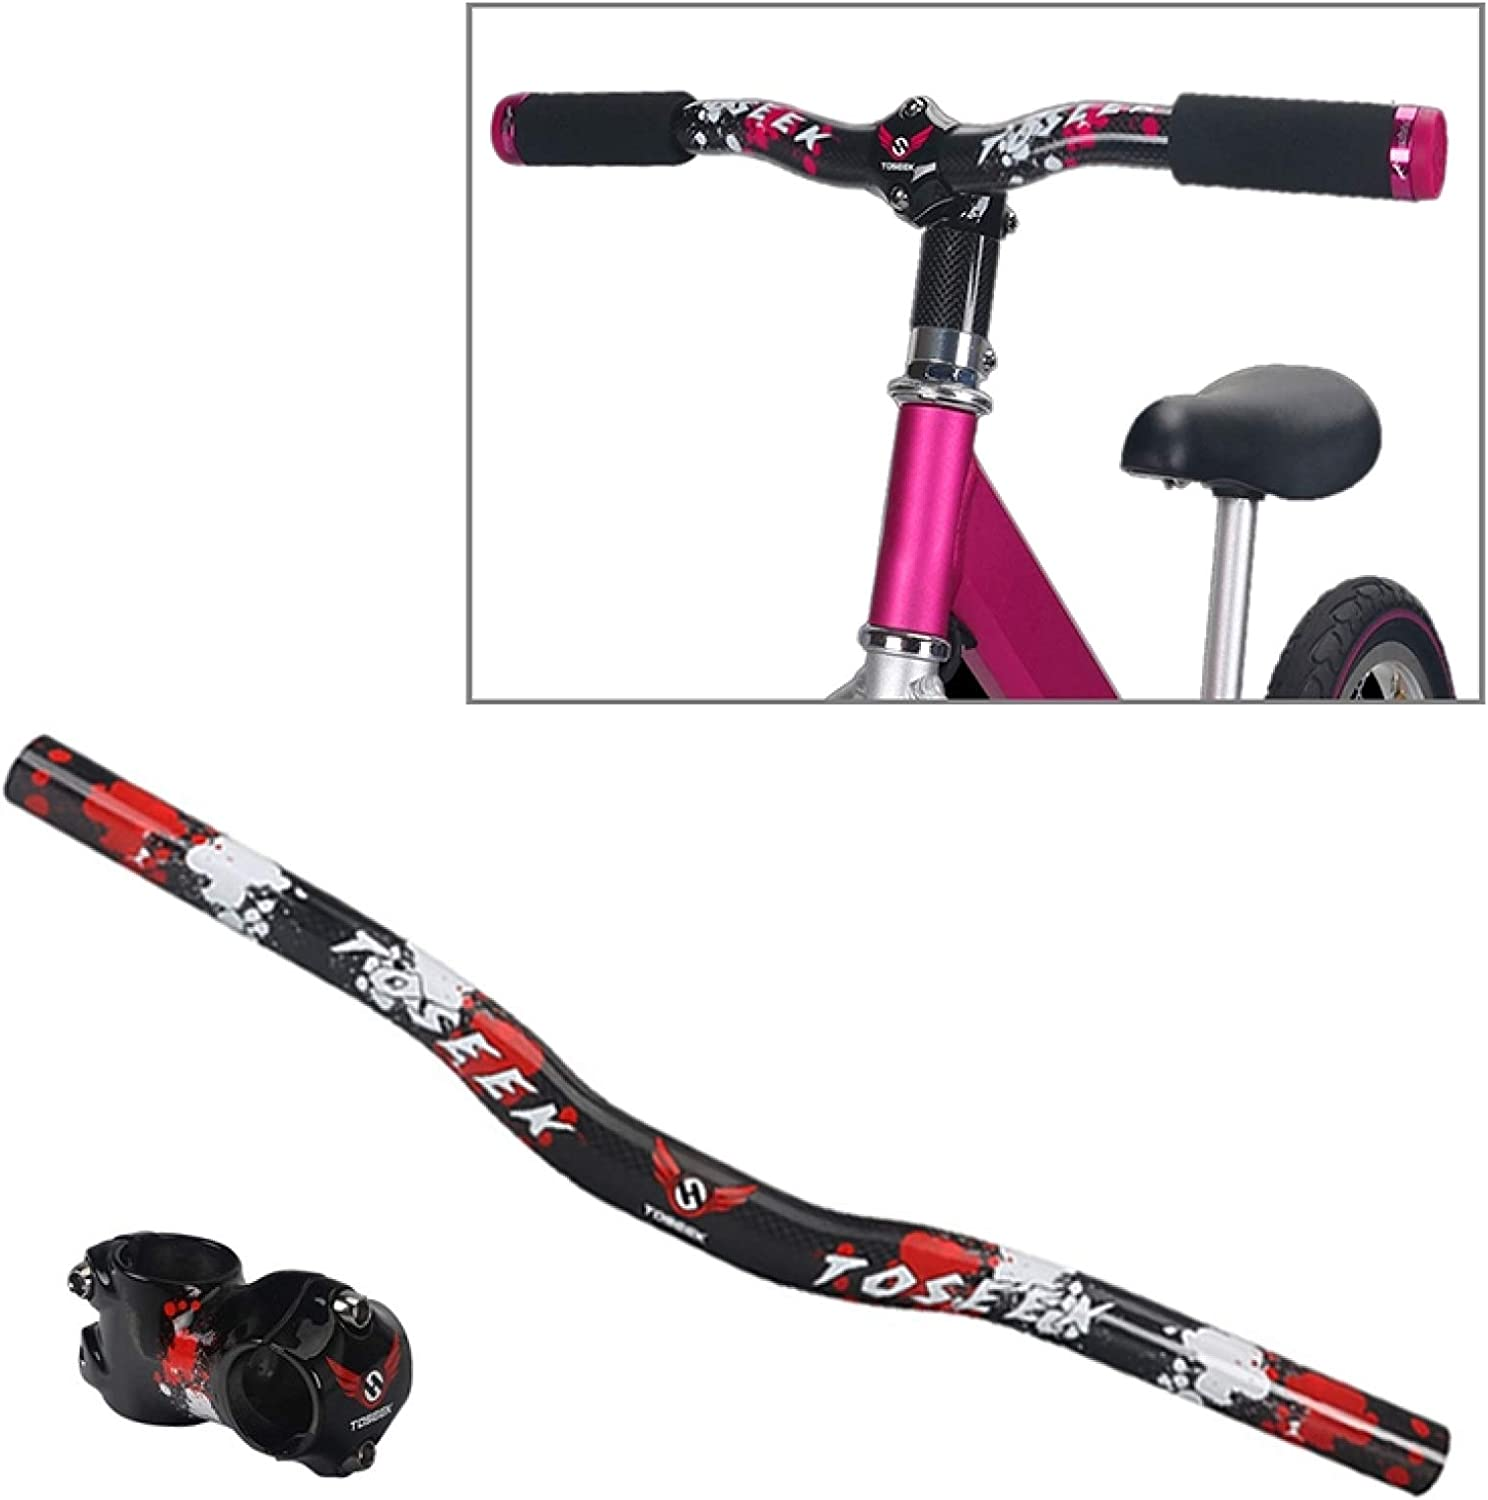 Jiangym Sports NEW before selling ☆ Accessories Carbon Fiber Be Children Balance Bike Inexpensive